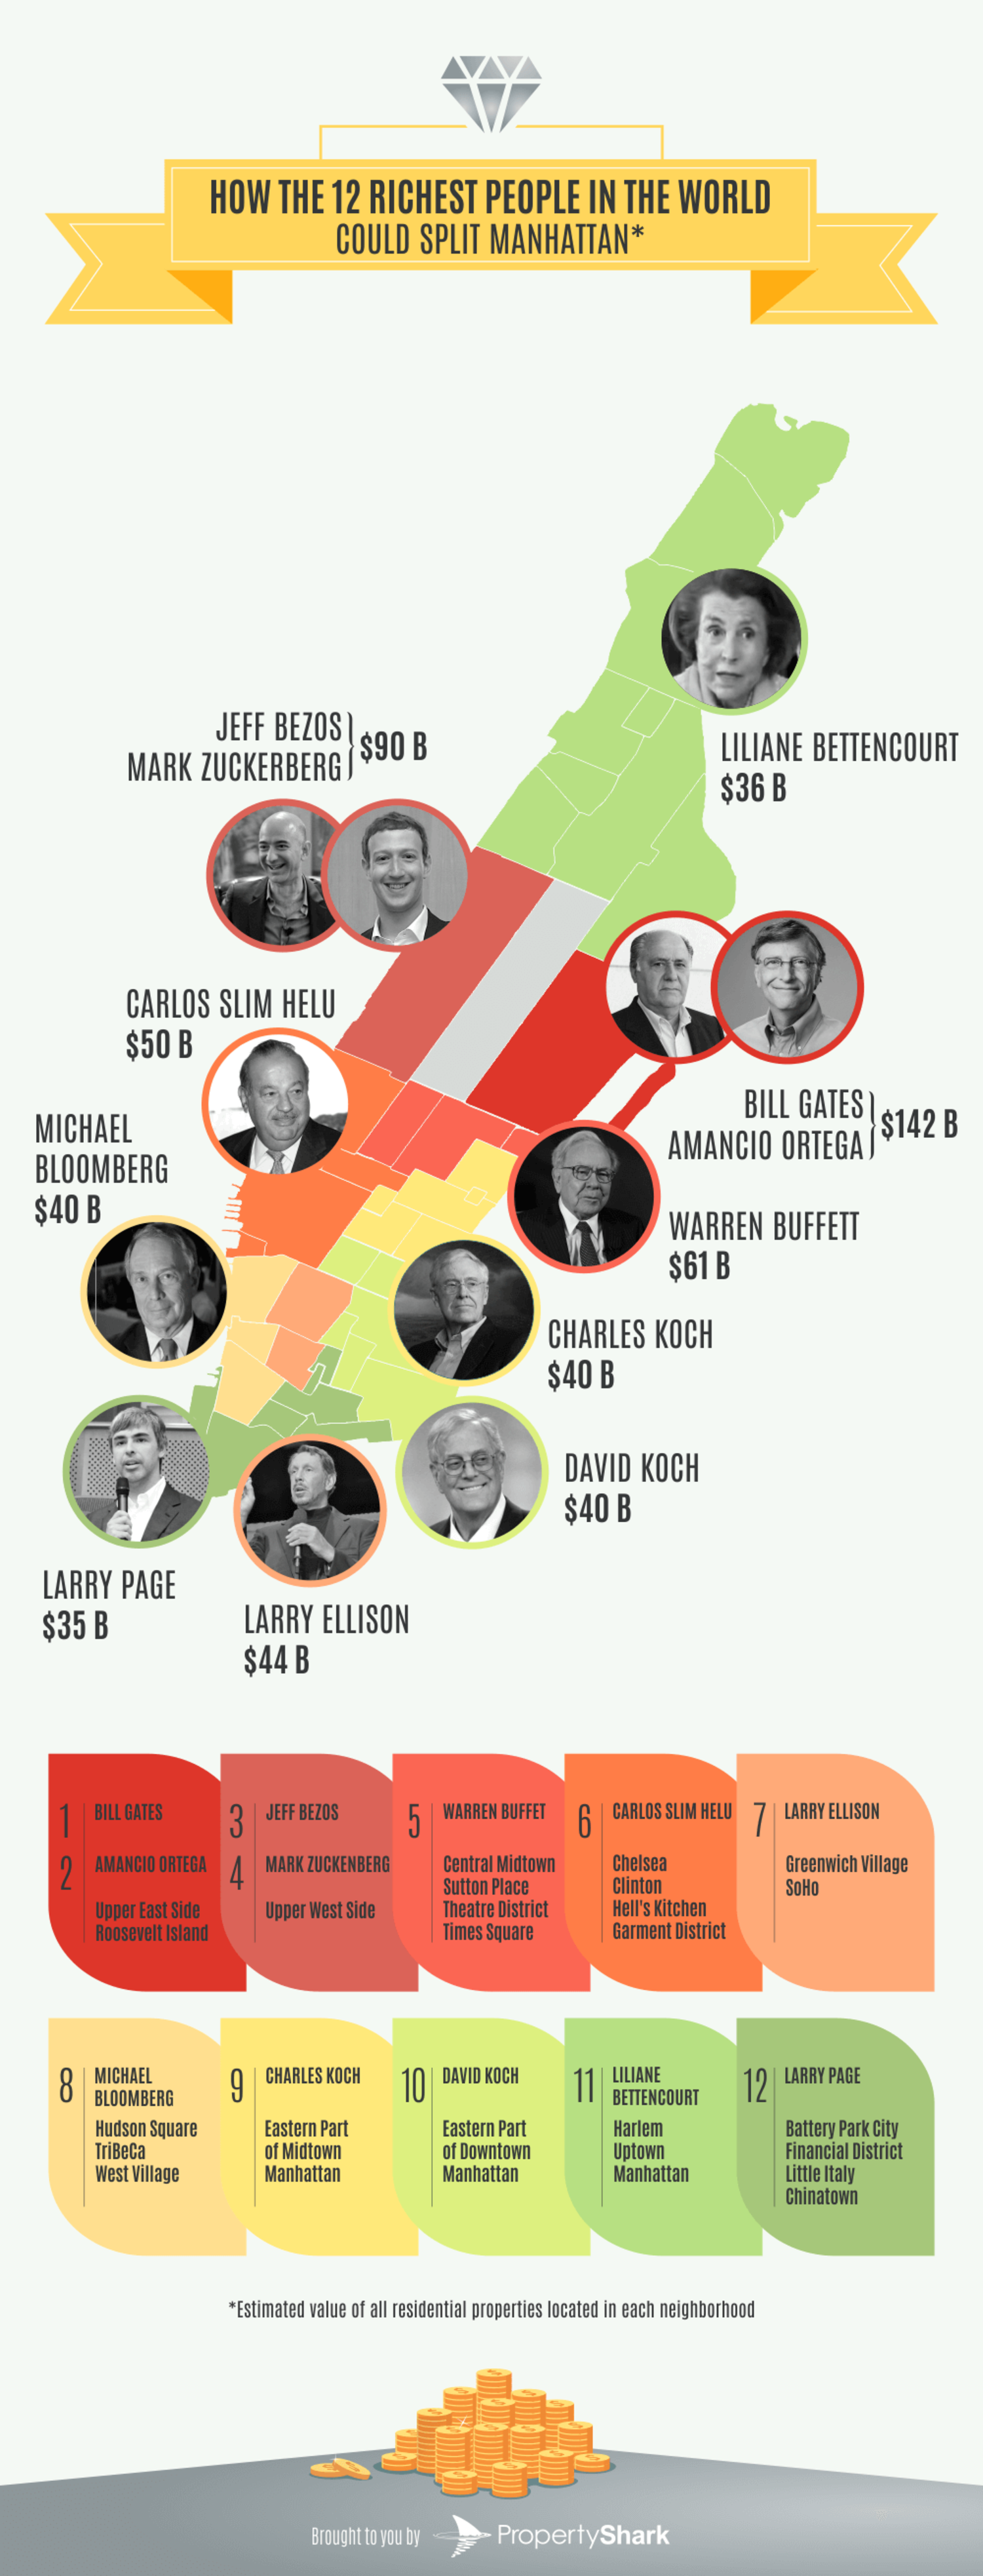 The 12 richest people in the world could jointly buy all of Manhattan